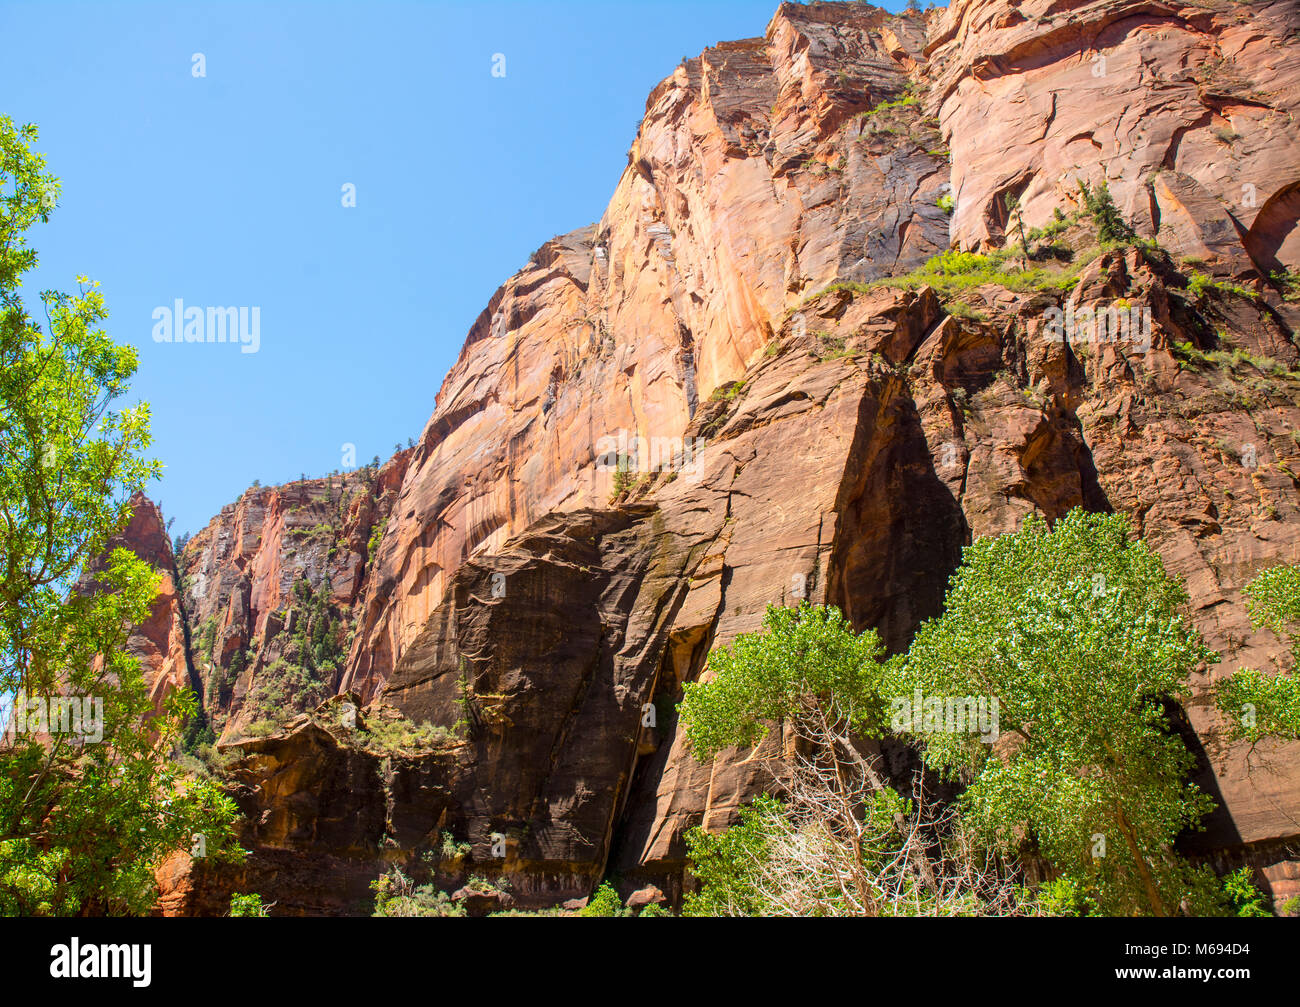 Creases and crevices on cliff side of mountain. Stock Photo